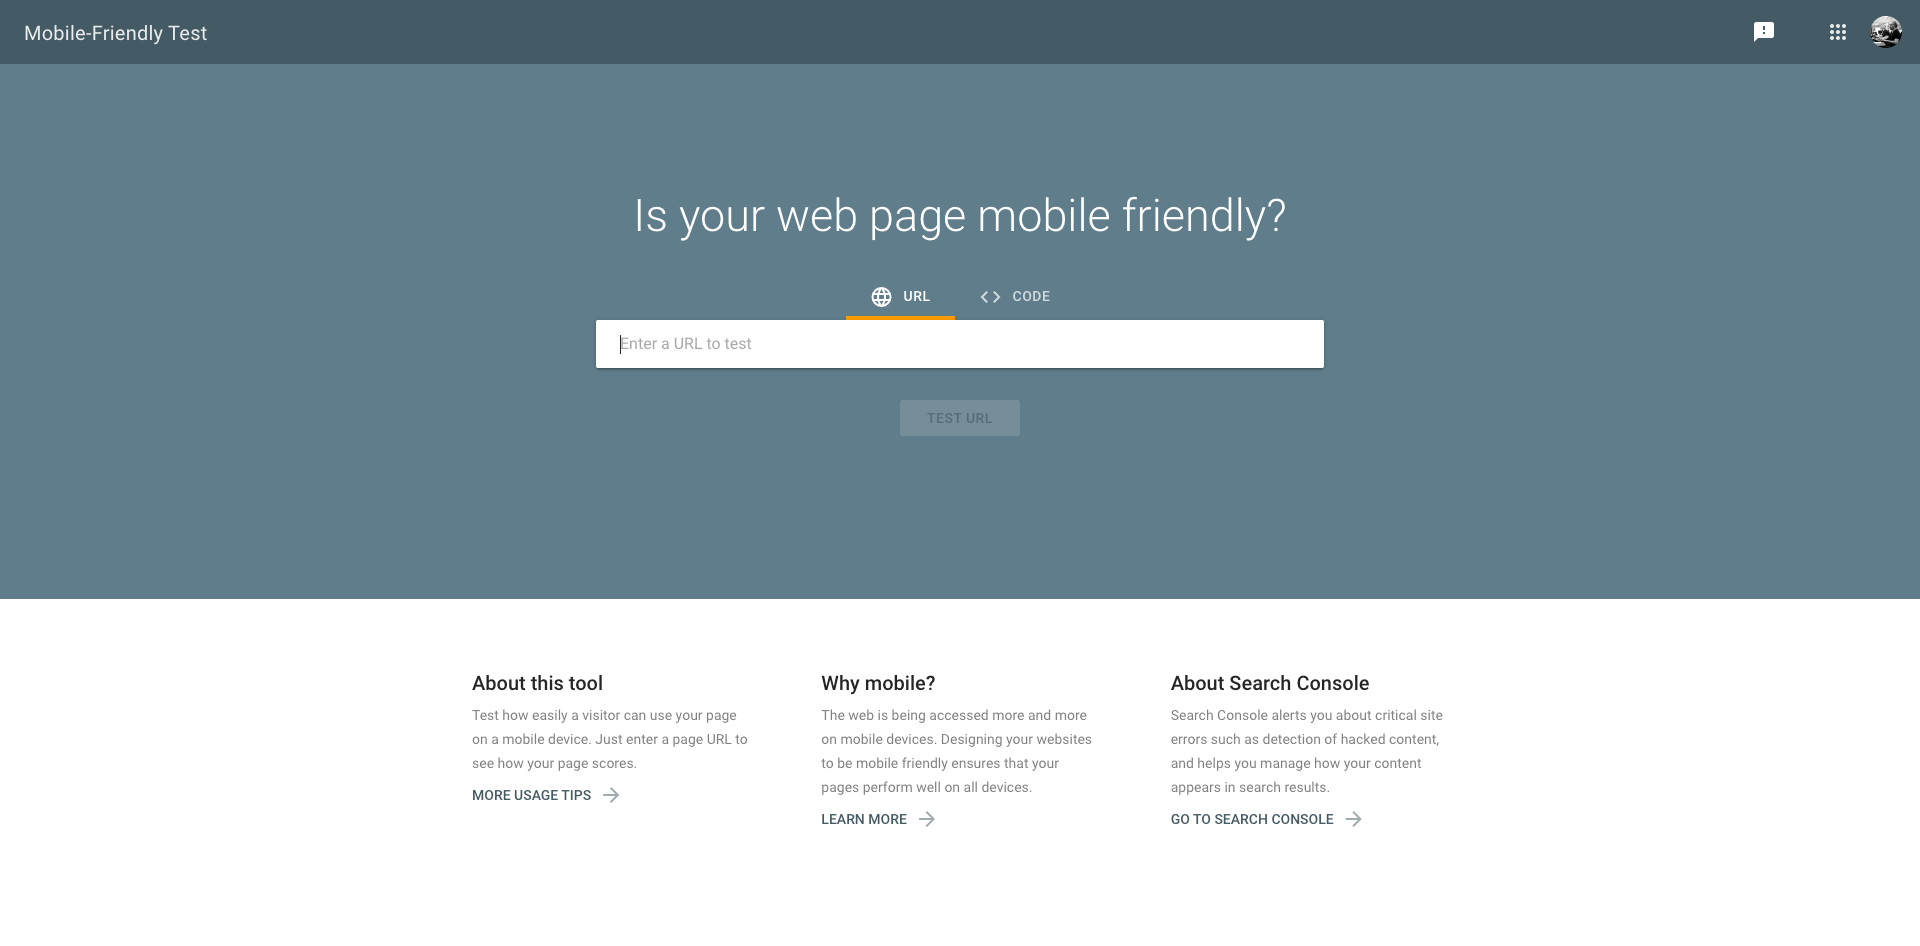 Is your web page mobile friendly?